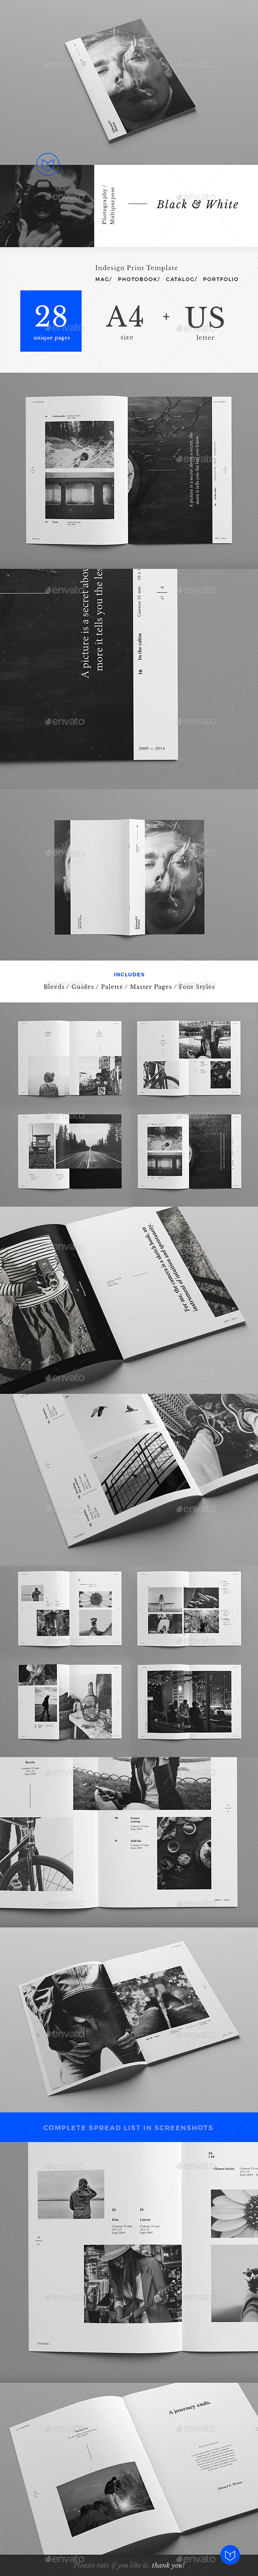 Clean Photography / Art Portfolio - Portfolio Brochures